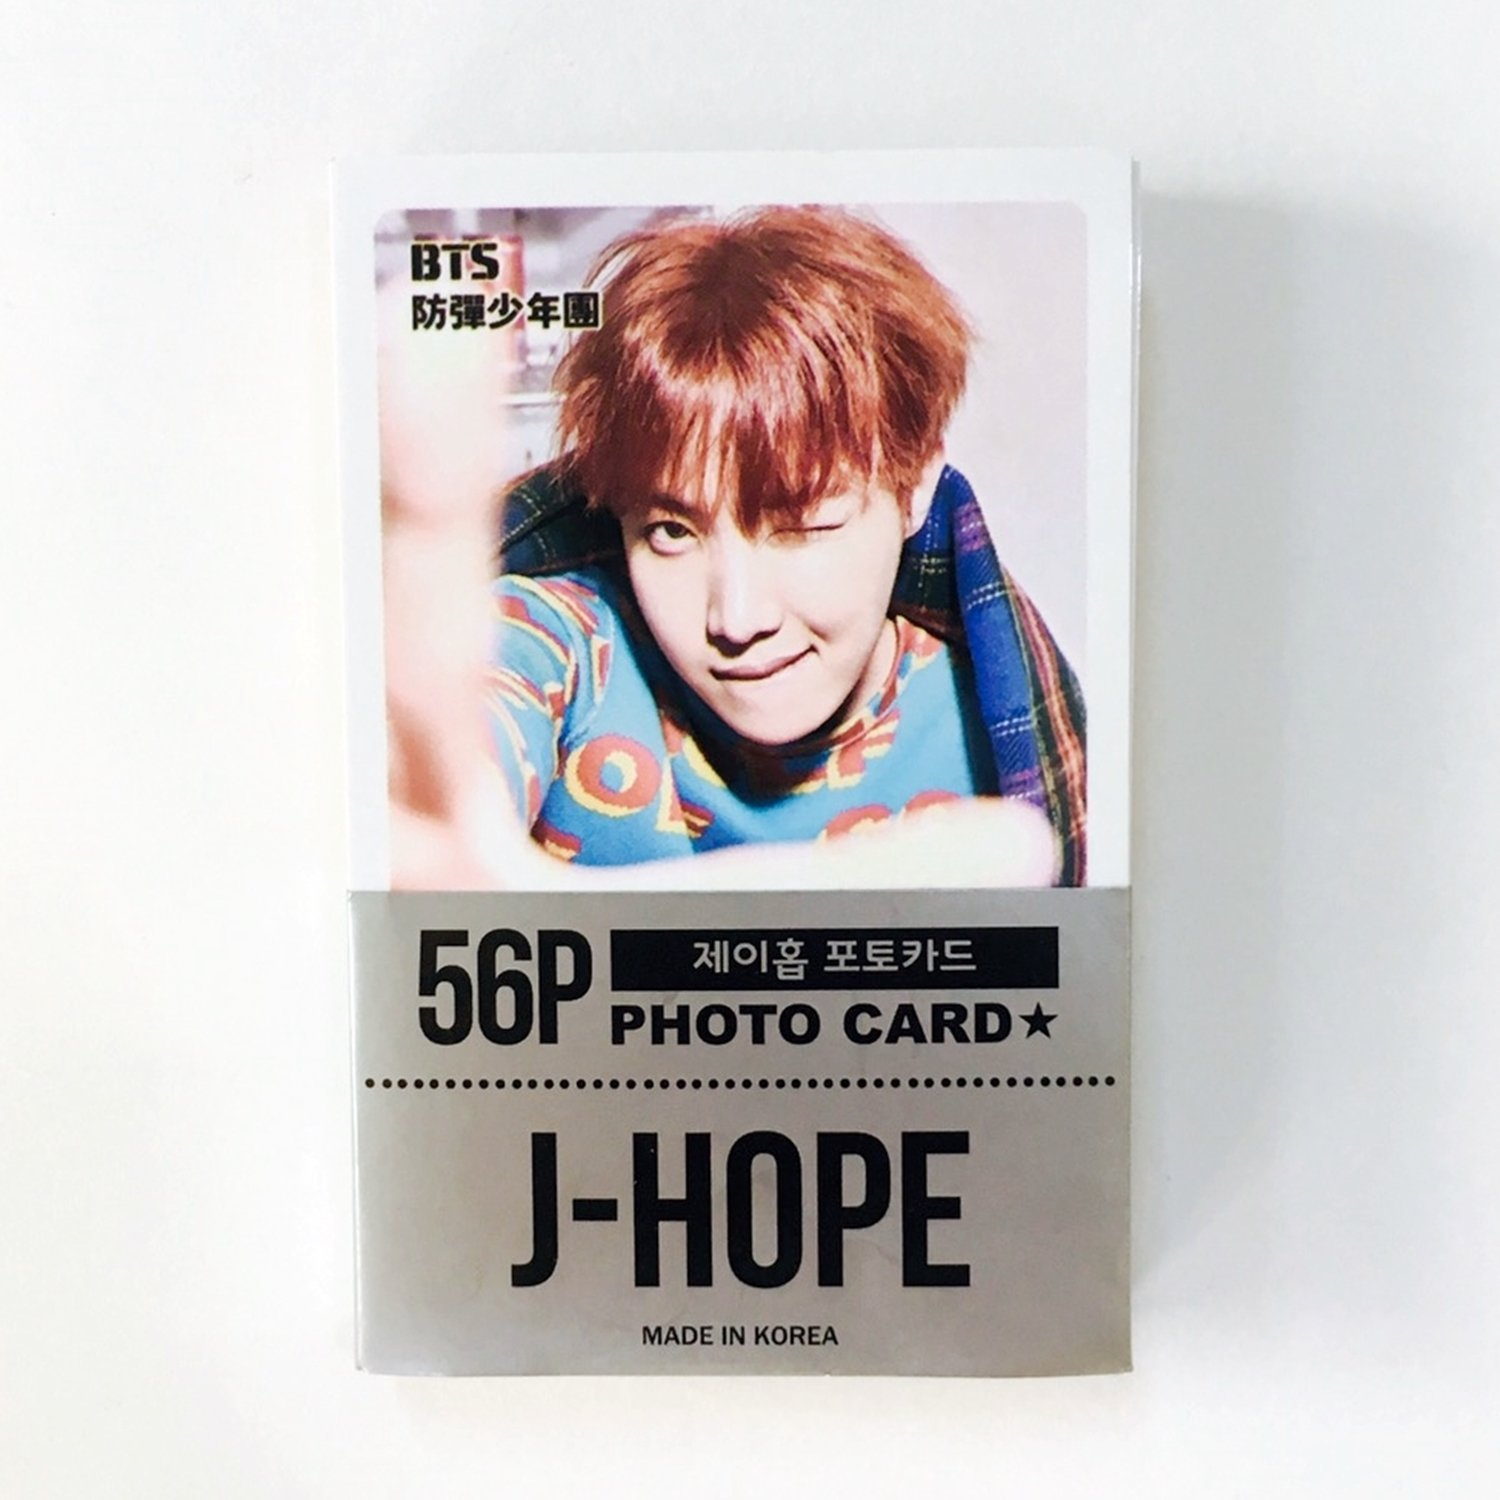 BTS J-HOPE Solo Photocards 56pcs